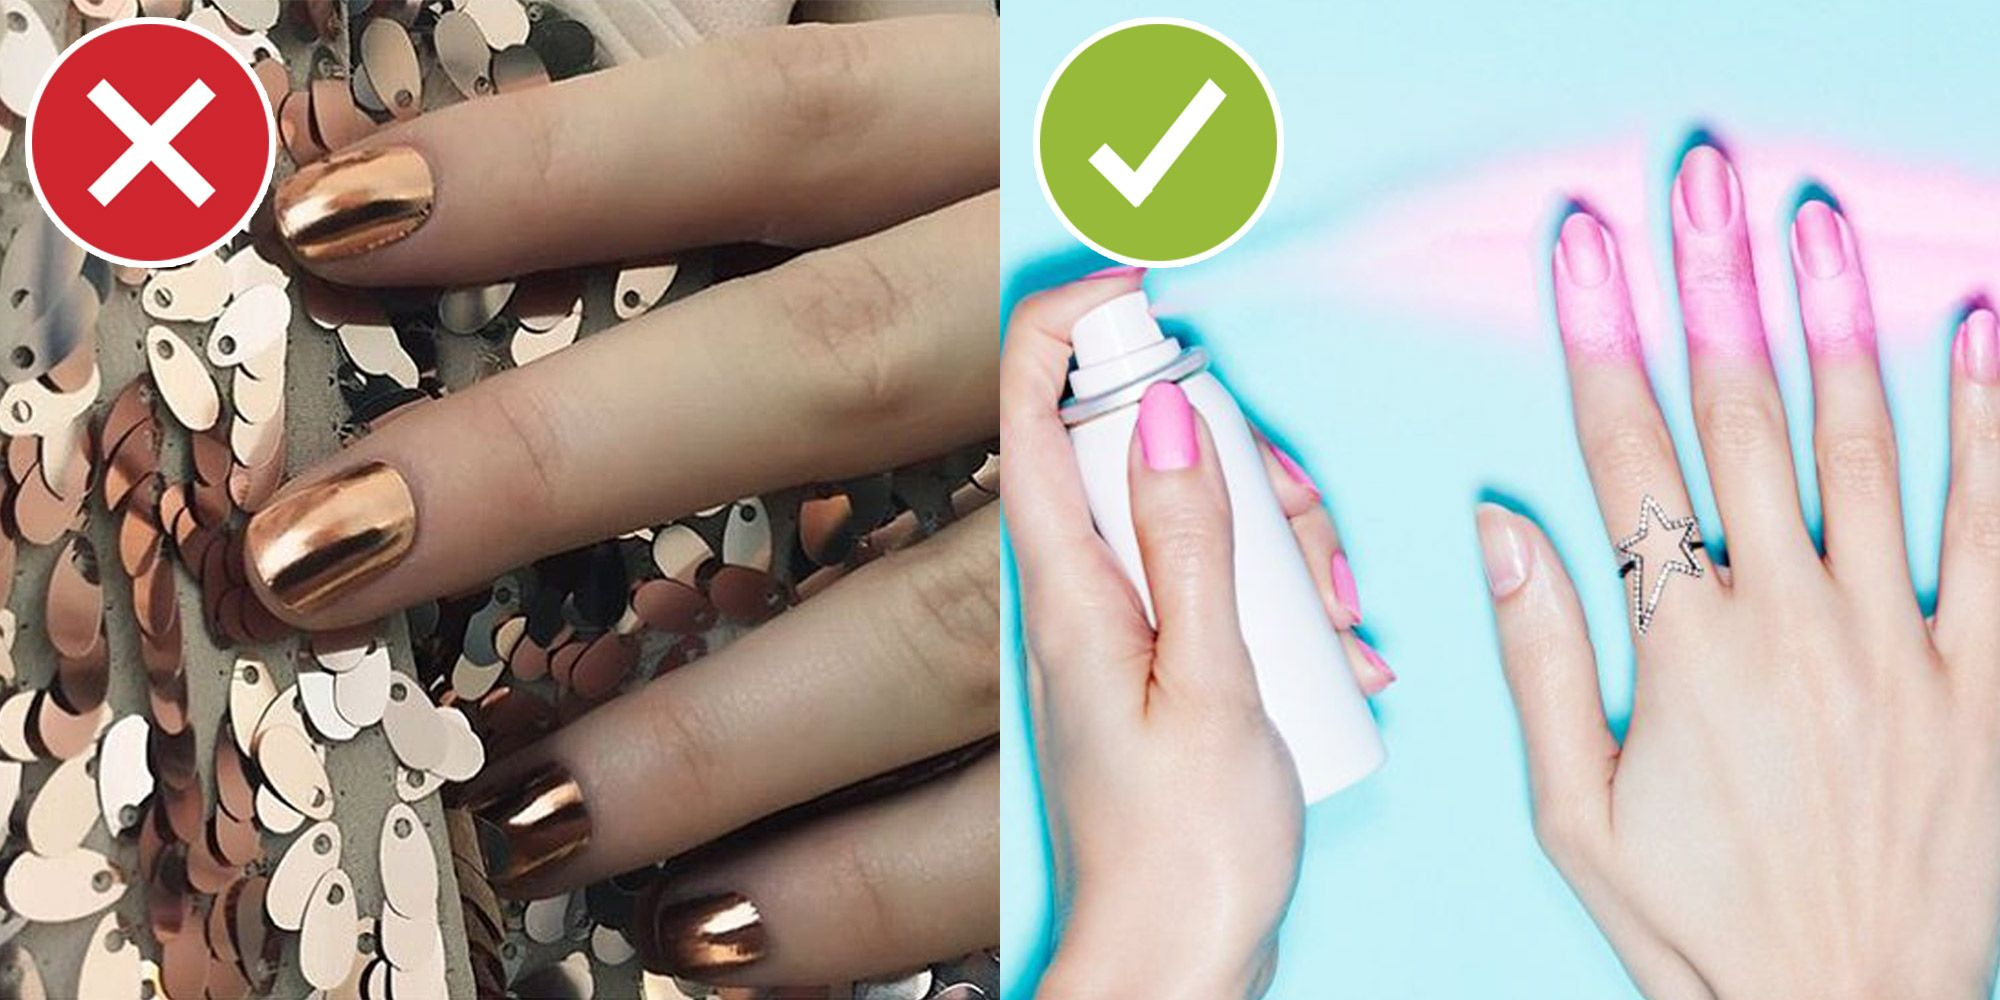 "<p>Decals yes, cutting and shaping and pressing out all the air bubbles no. When the alternative <a href=""http://www.marieclaire.com/beauty/news/a16851/spray-on-nails-trend/""> takes 20 seconds per hand</a>, why would you go through all the trouble?</p>"